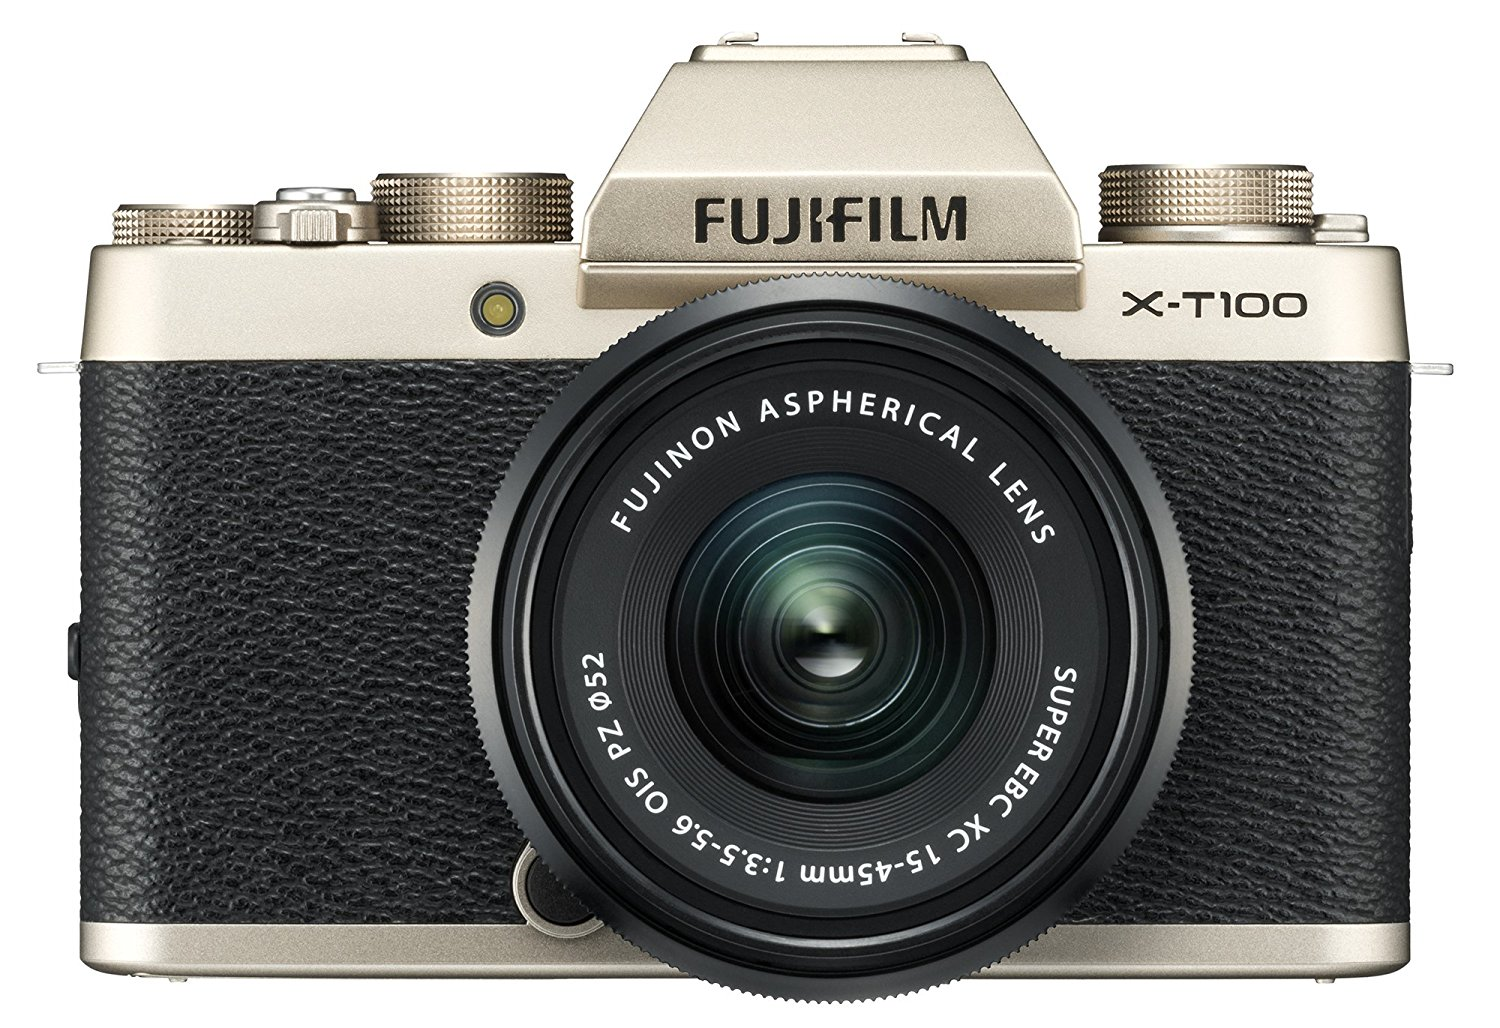 Fuji X-T100 - Say hello to Fuji's most affordable camera!Instead of Fuji's 24MP X-Trans III sensor, this camera comes packed with a 24MP Bayer sensor. For most, the difference between an X-Pro 2 still and an X-T100 still would be indistinguishable: almost identical ISO performance, dynamic range, sharpness, etc.But some photographer prefer the traditional Bayer look to Fuji's X-Trans sensor. If you're one of them, the X-T100 couples the delightful ergonomics and professional lens lineup with the sensor technology you know and love from Canon and Nikon.Autofocus is zippy, the buffer handles fast-paced RAW shooting quite well, and it's got an articulating screen for those selfie moments. What more could you want?If image quality is important to you and you don't mind the Bayer sensor, this is the camera for you.